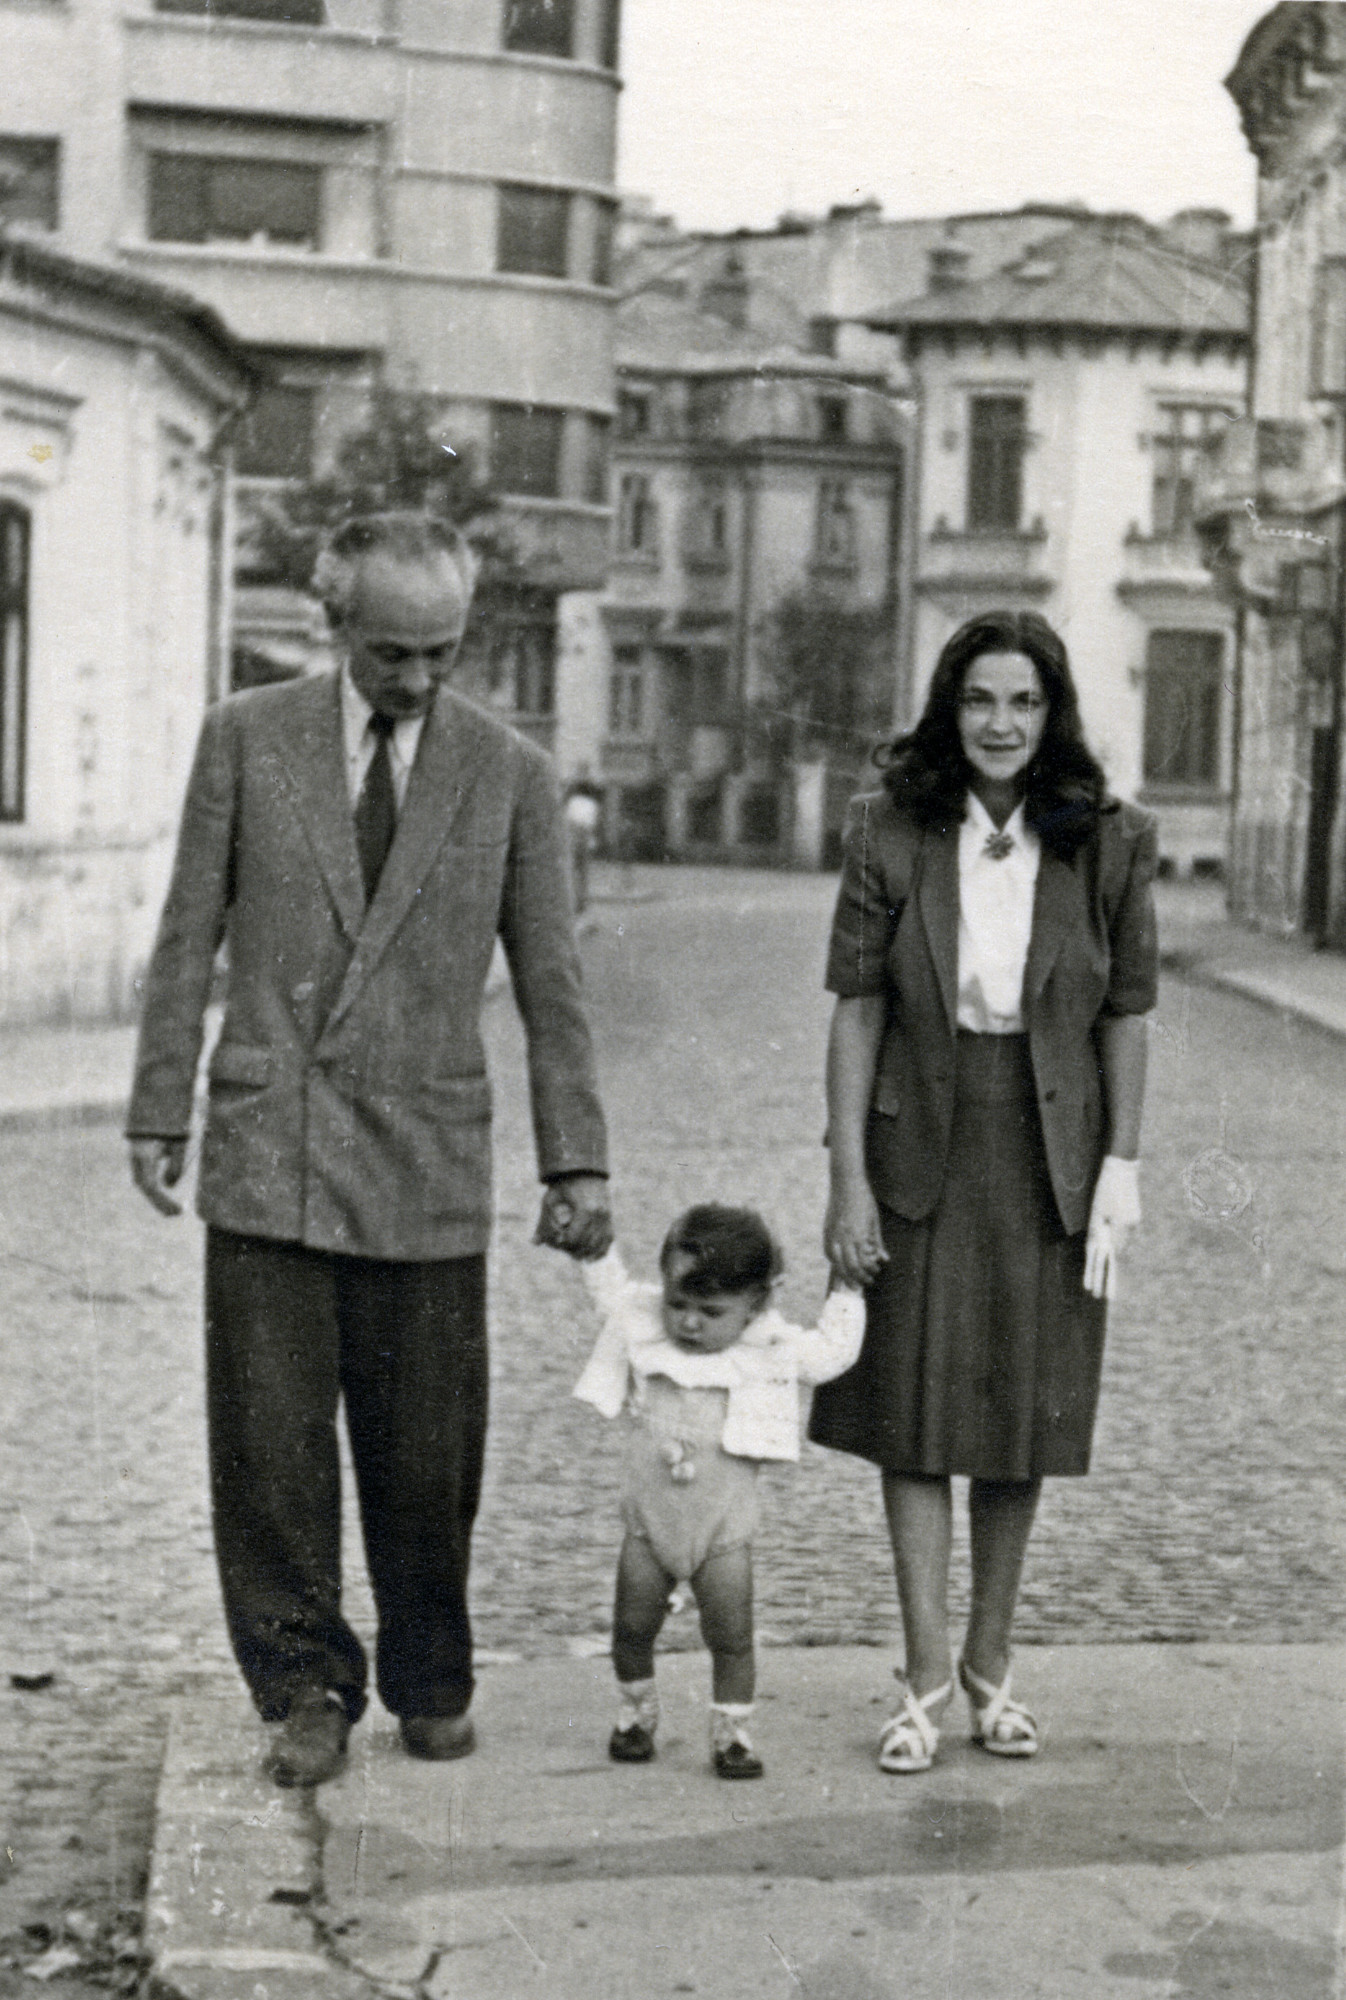 Felix and Charlotte Gelehrter walk down the streets of Bucharest with their son, Lou.